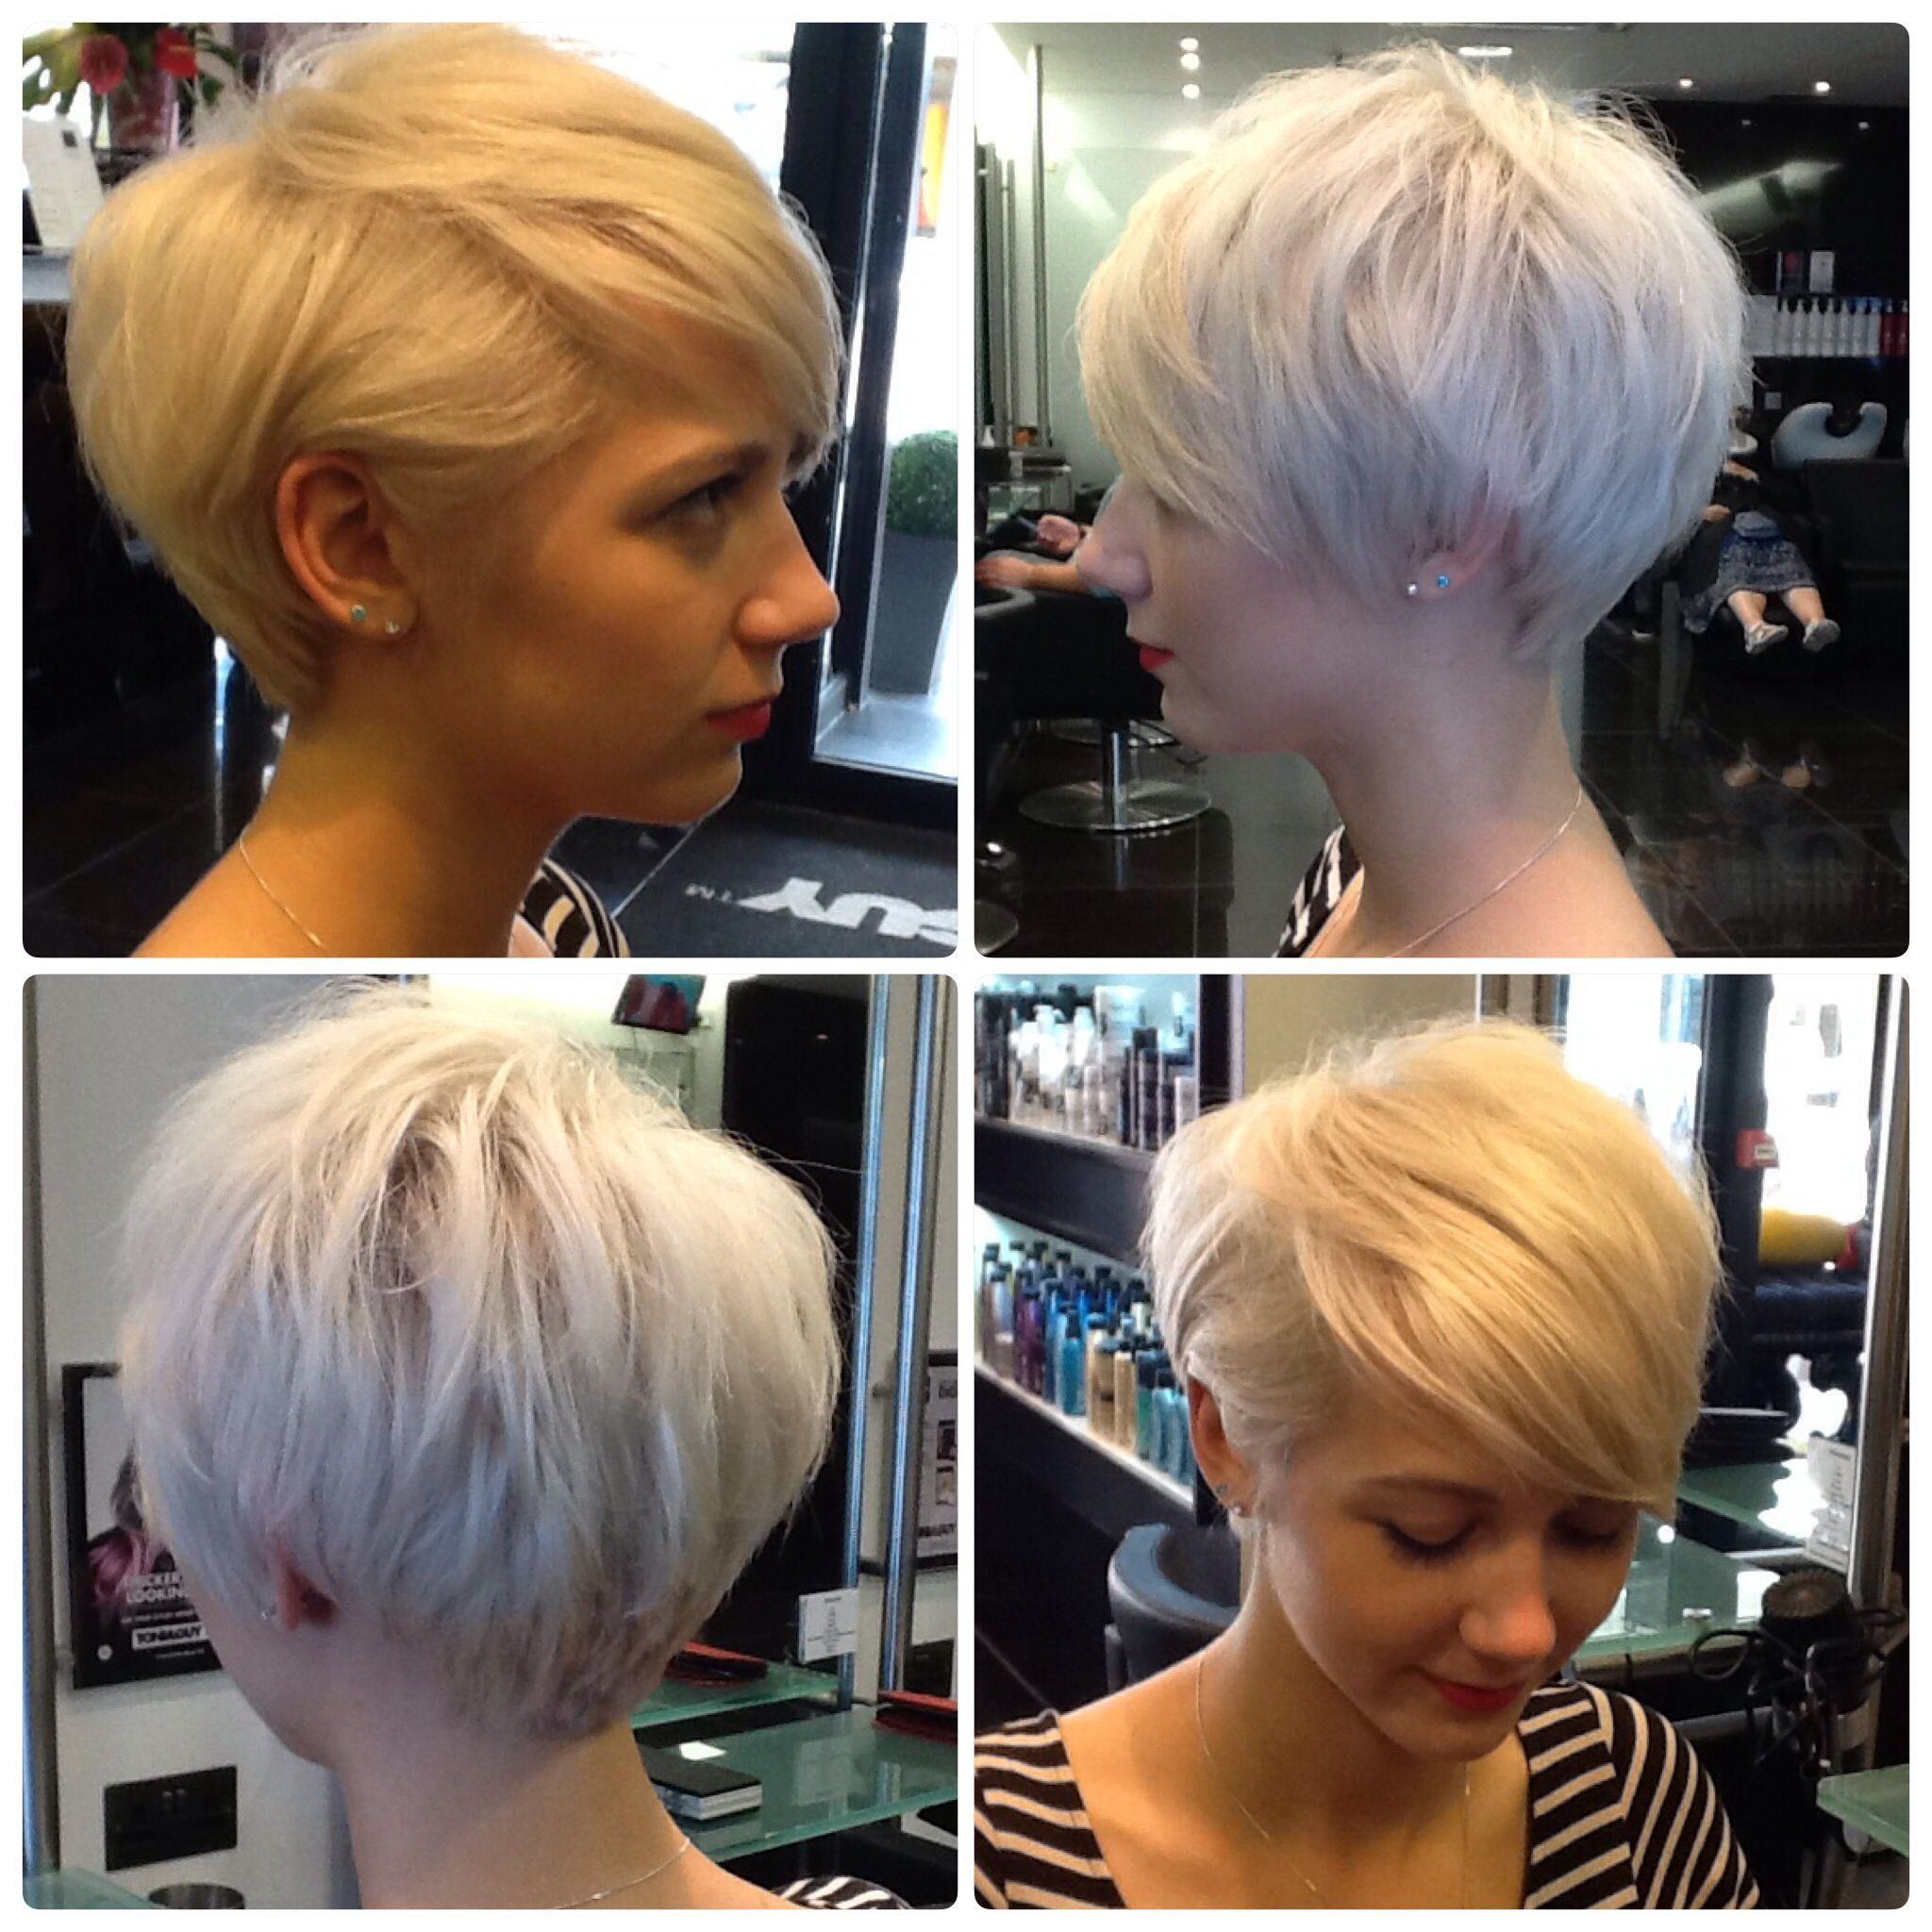 Short hair created by tanya long from toniguy poole hairdressing